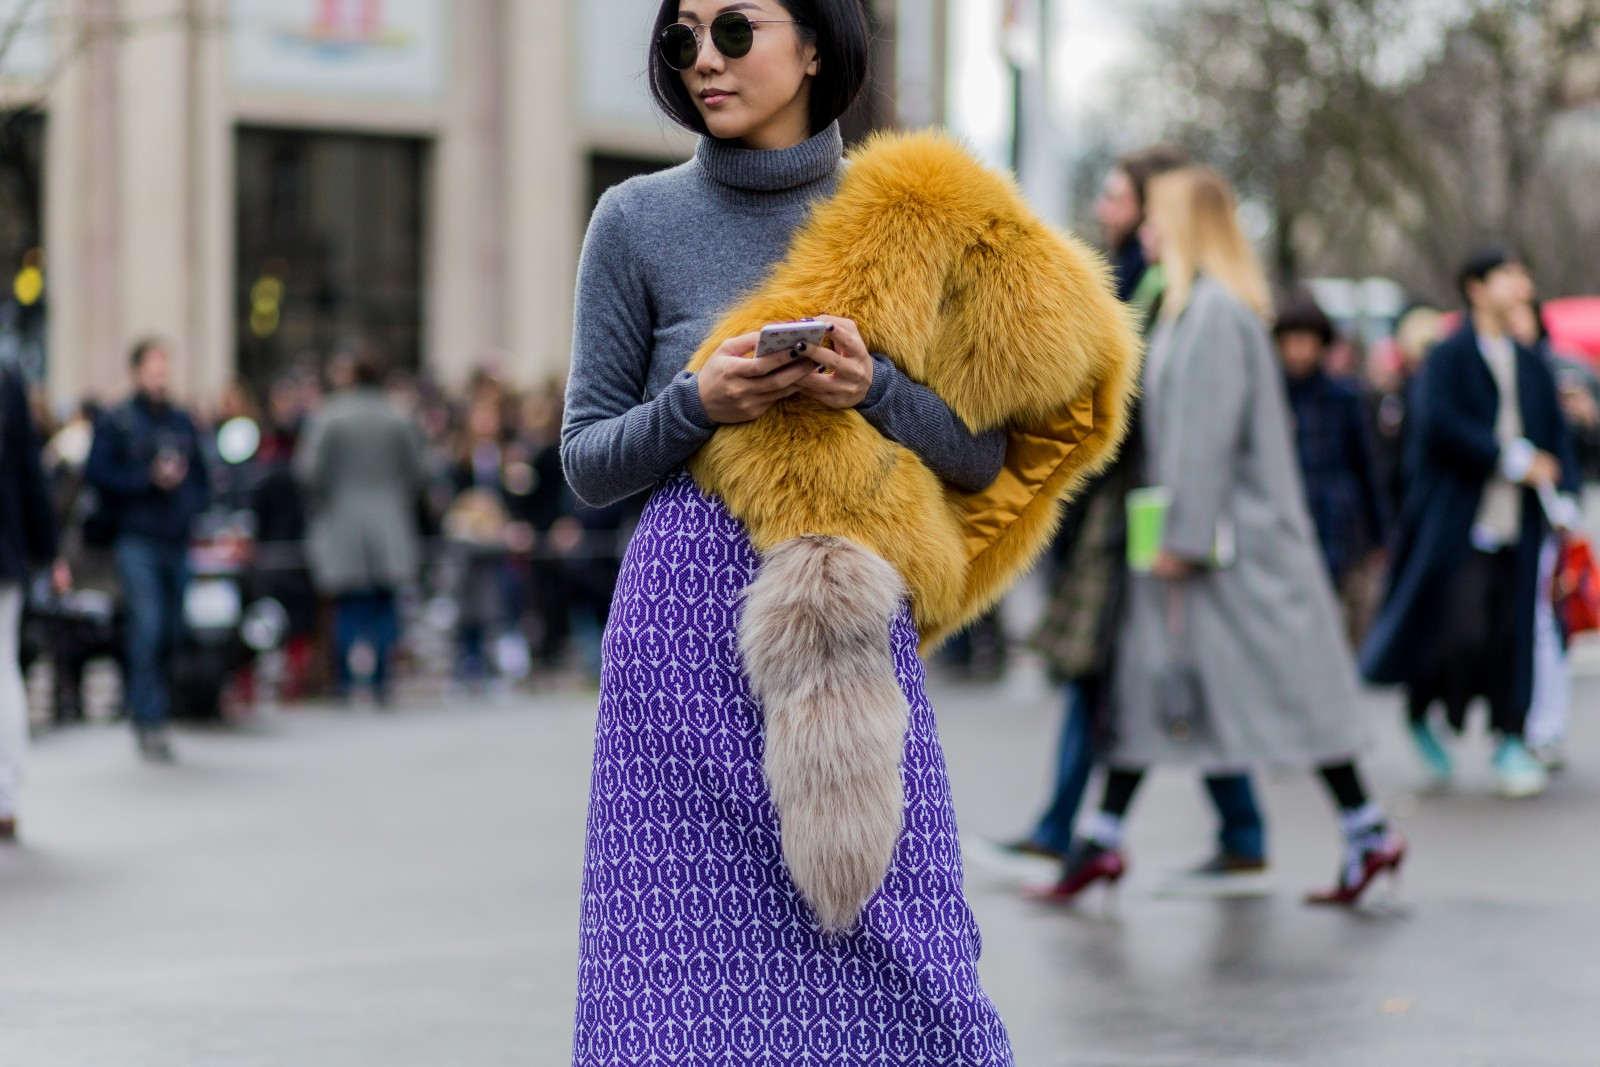 PARIS, FRANCE - March 9:  Yoyo Cao wearing a yellow fur scarf and grey turtleneck and purple skirt outside Miu Miu during the Paris Fashion Week Womenswear Fall/Winter 2016/2017 on March 9, 2016 in Paris, France.  (Photo by Christian Vierig/Getty Images) *** Local Caption ***